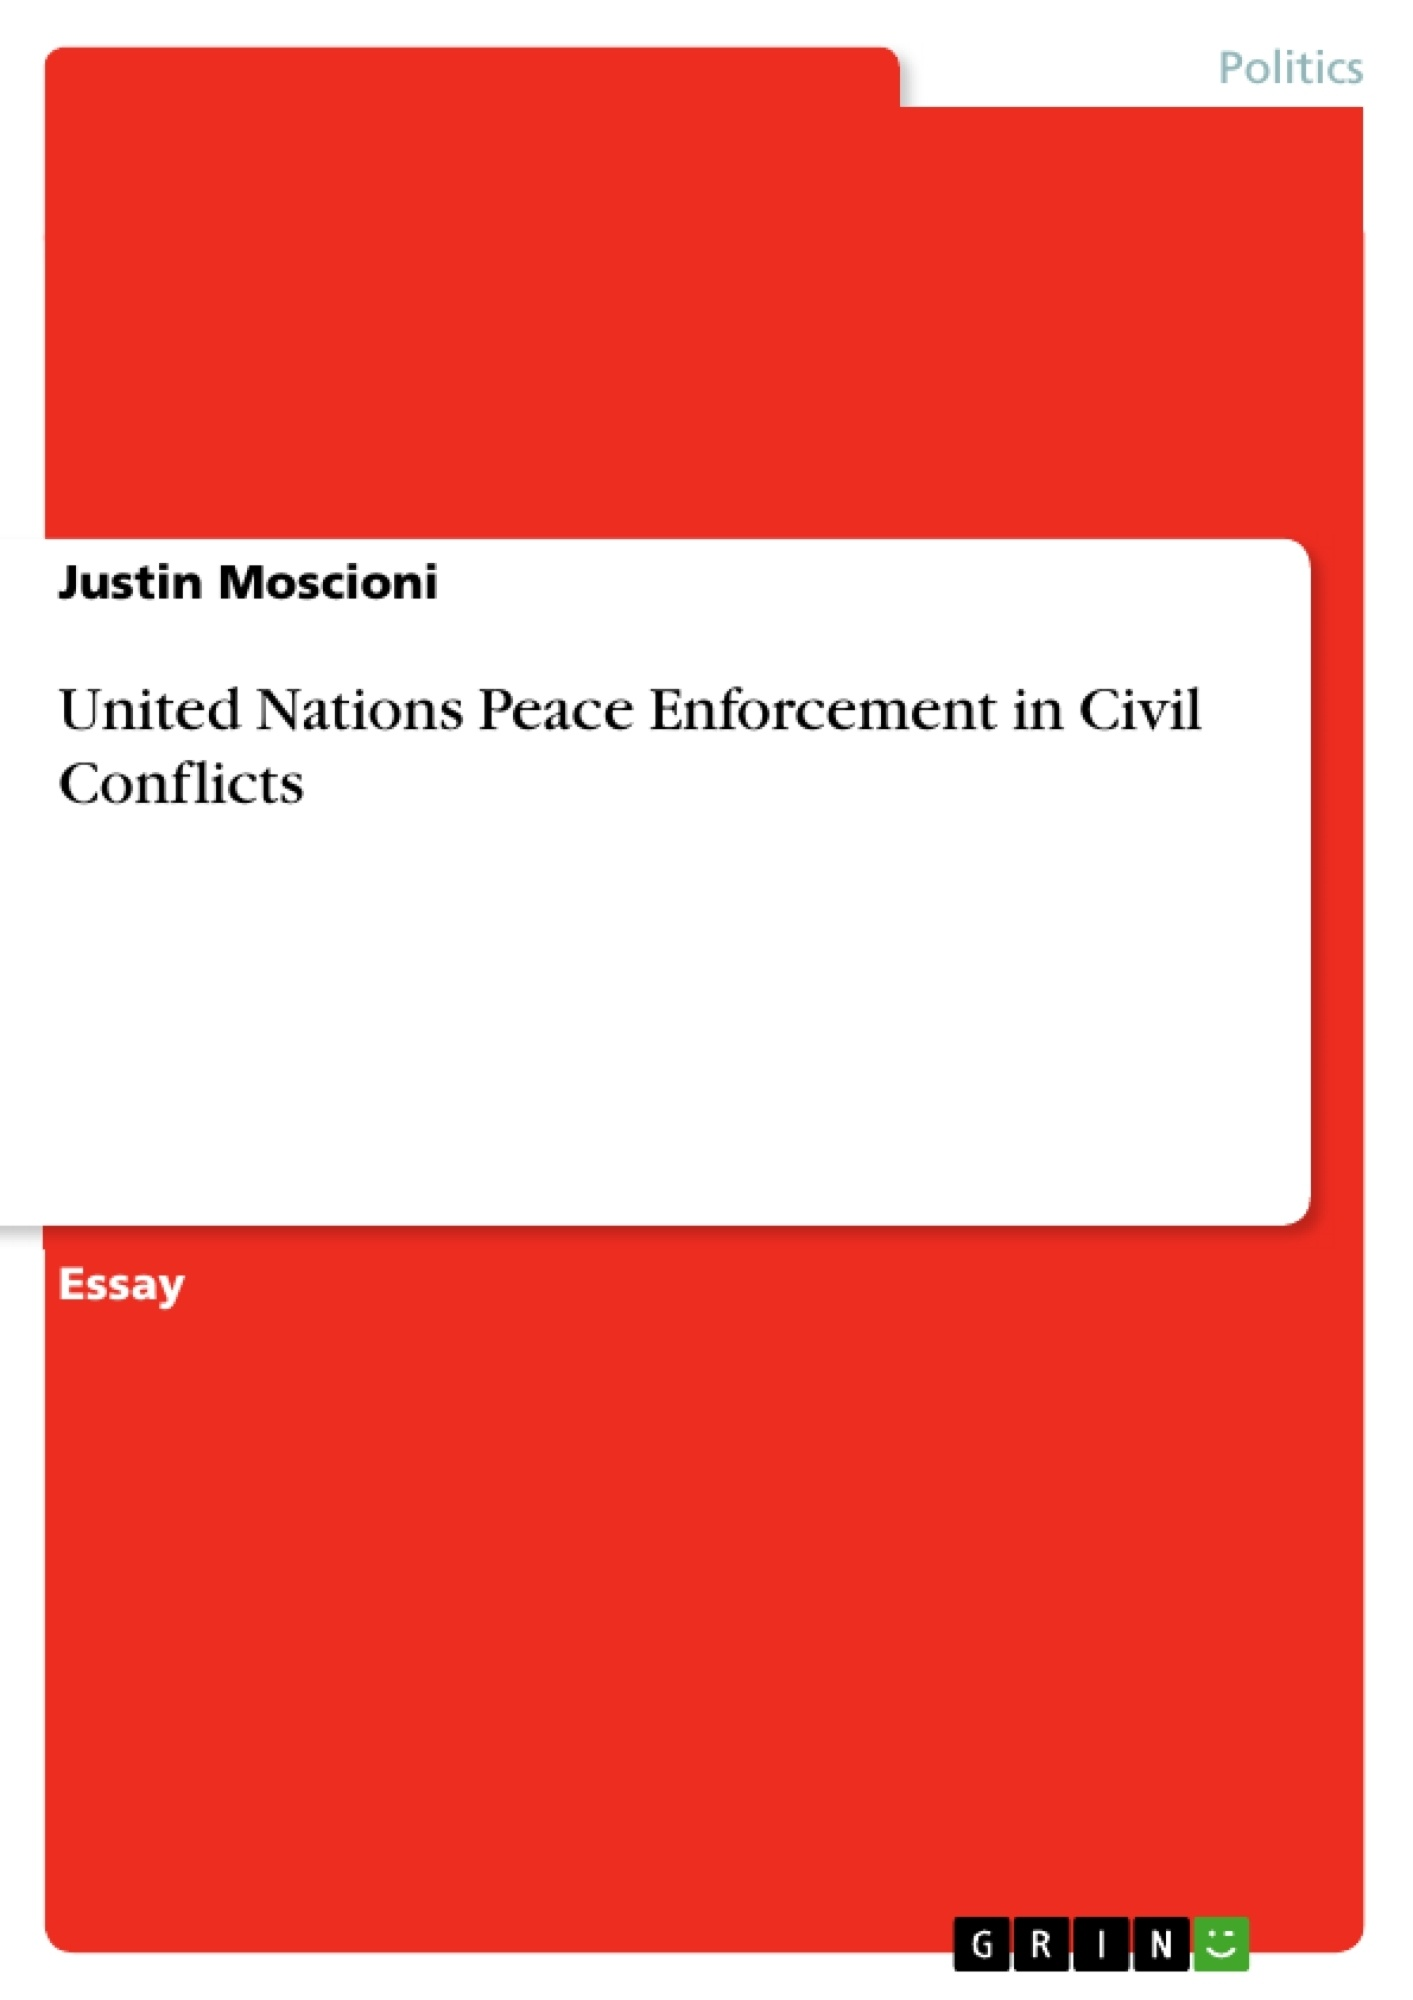 Title: United Nations Peace Enforcement in Civil Conflicts